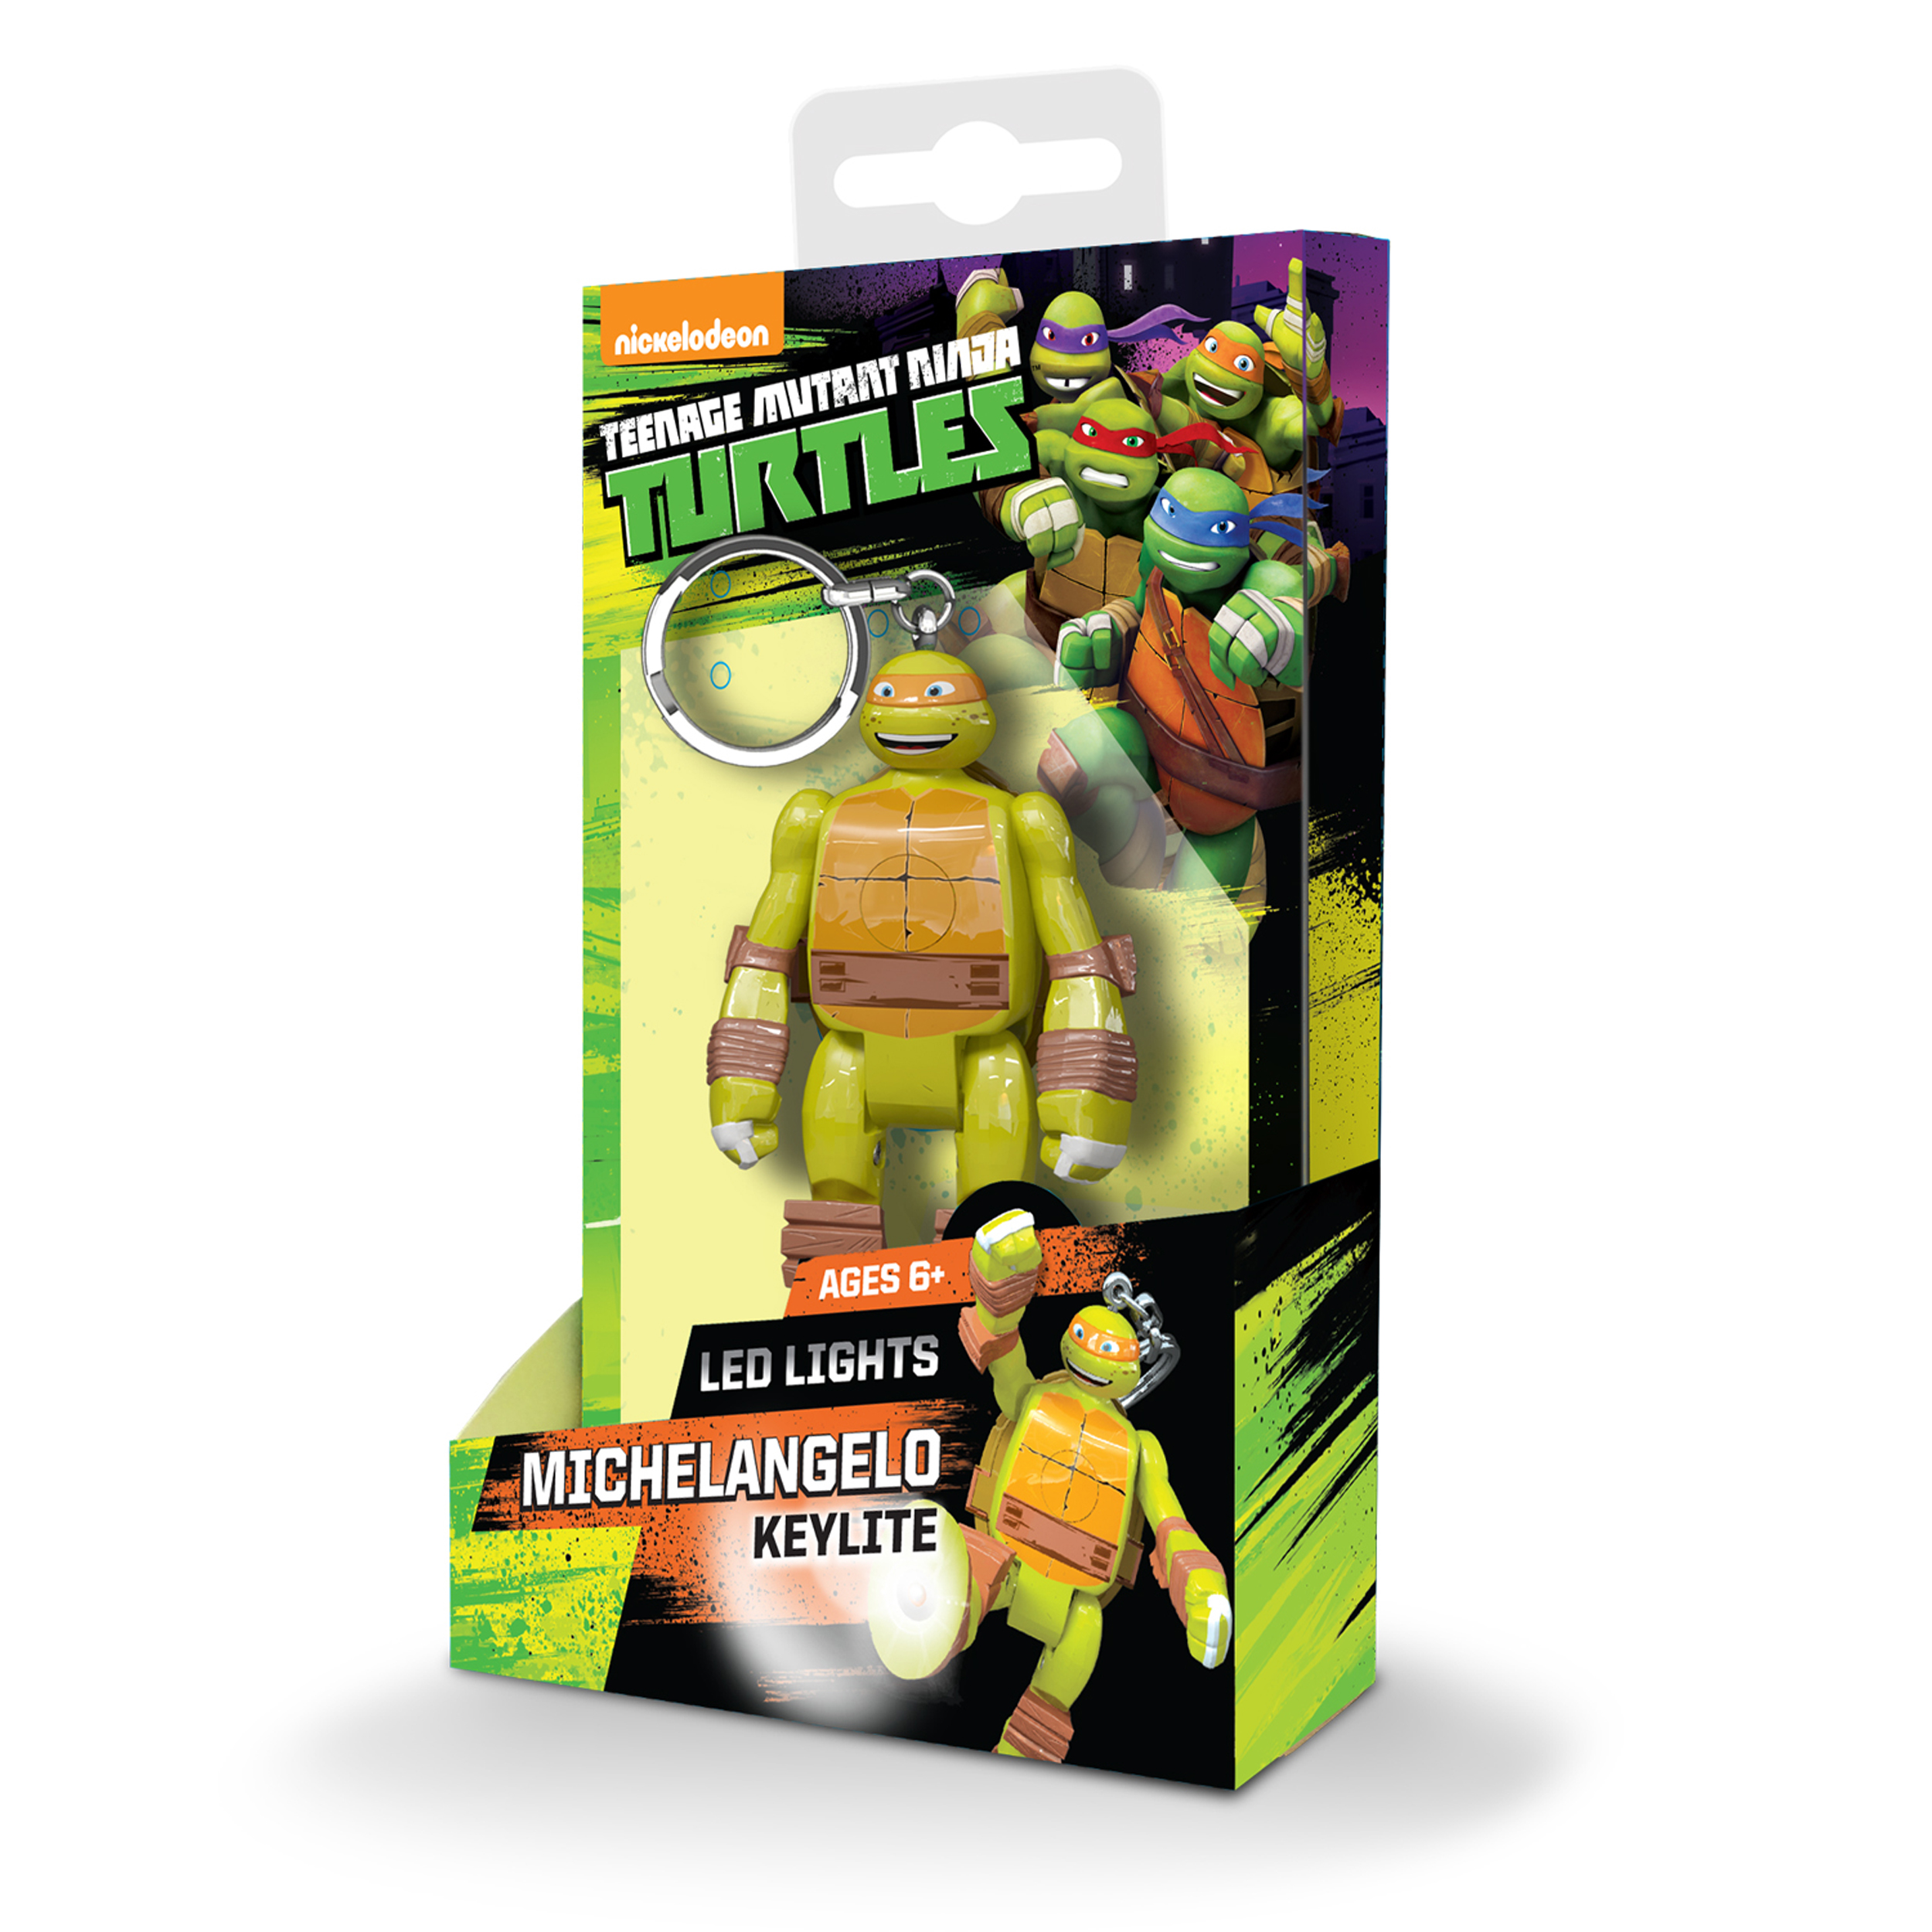 Nickelodeon TMNT Michelangelo Key Light PartNumber: 05257265000P KsnValue: 05257265000 MfgPartNumber: 188260